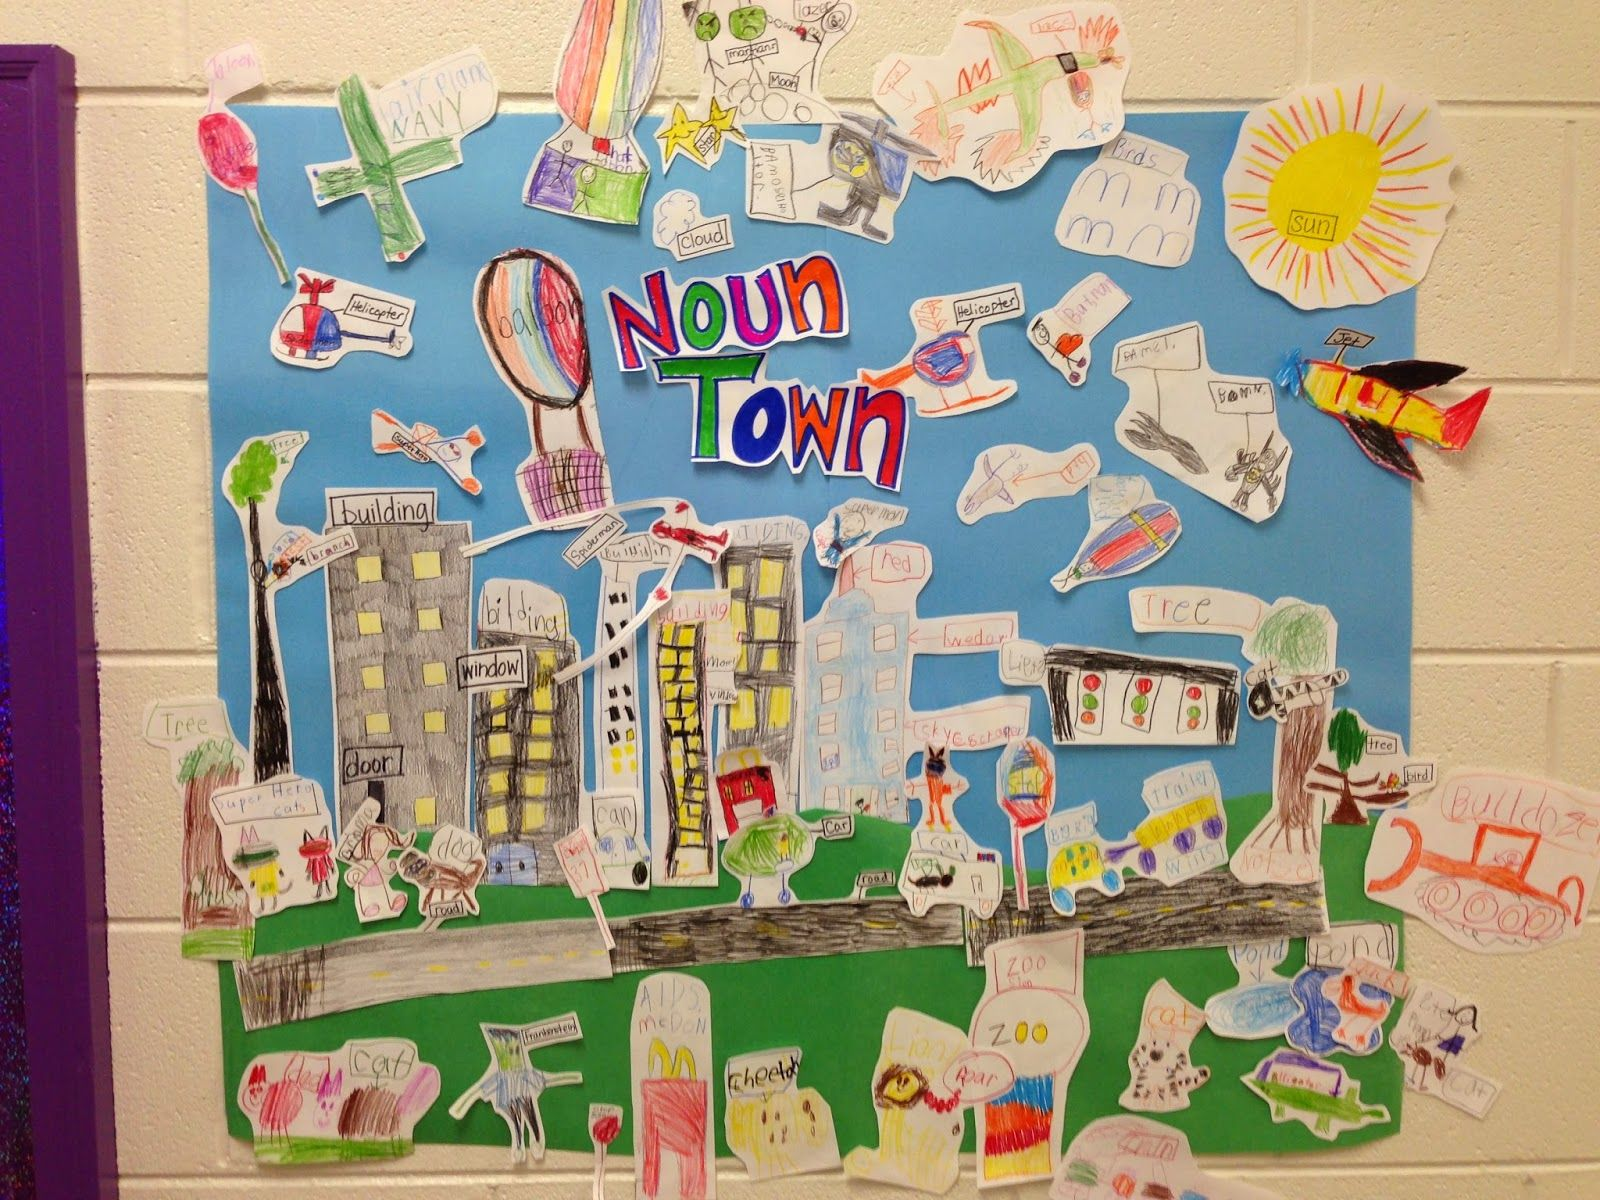 Noun Town- drawing and labeling nouns for a town mural ...